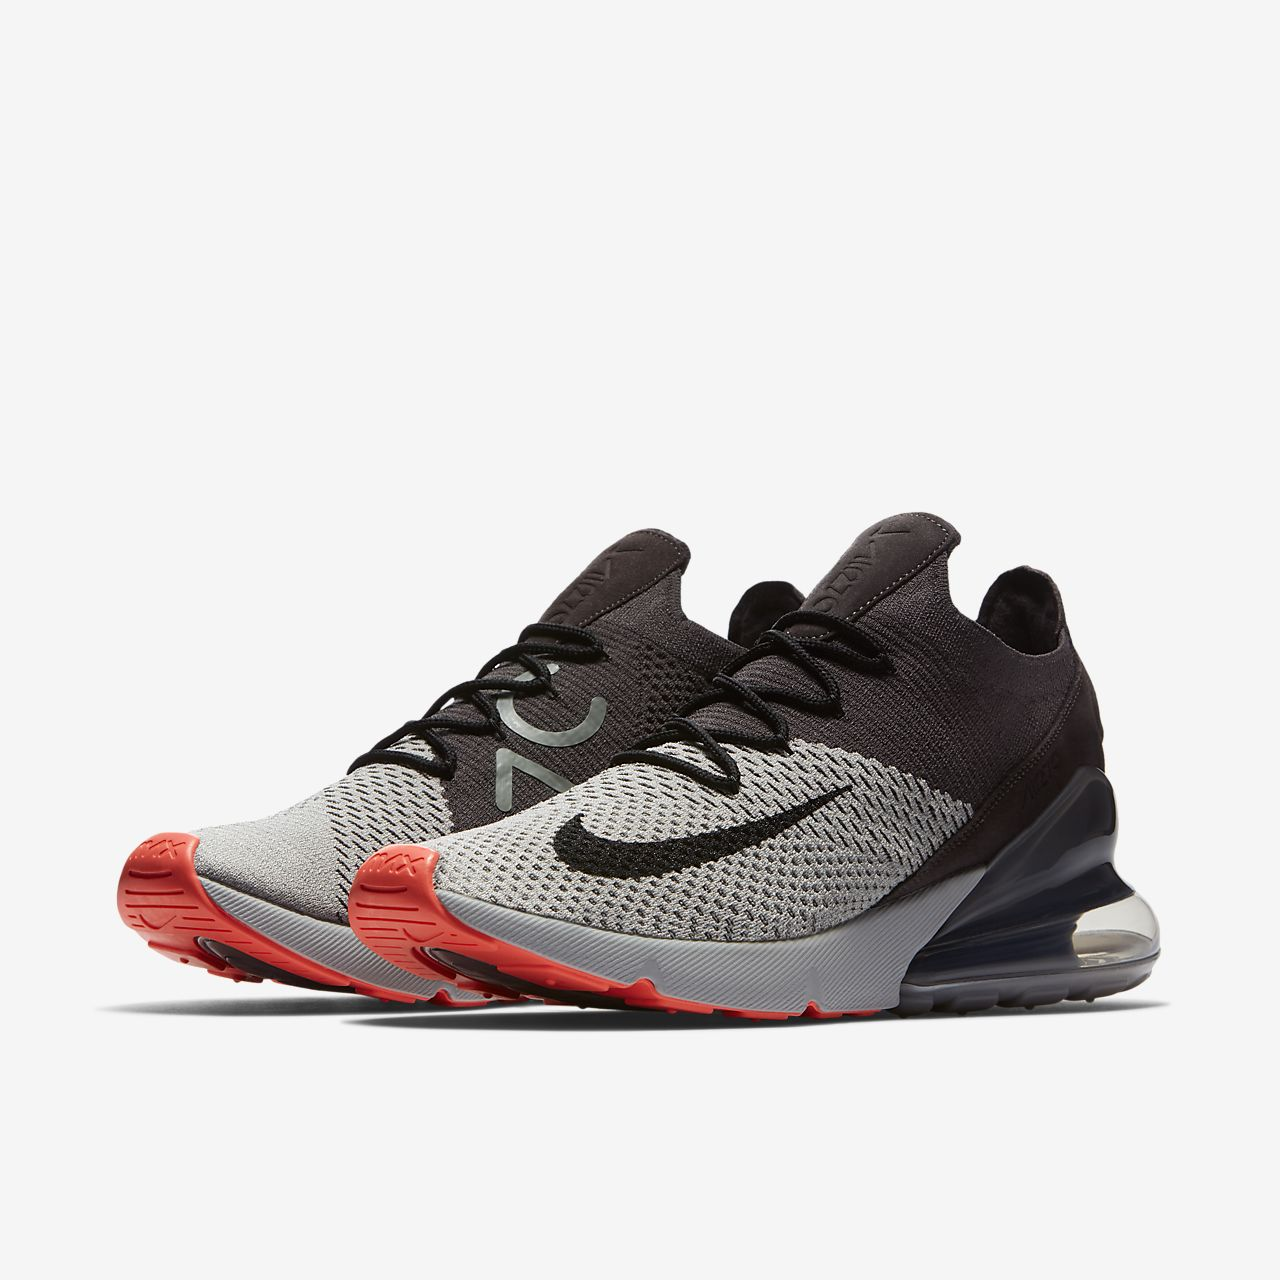 new concept 2bb3e fdb18 ... Chaussure Nike Air Max 270 Flyknit pour Homme